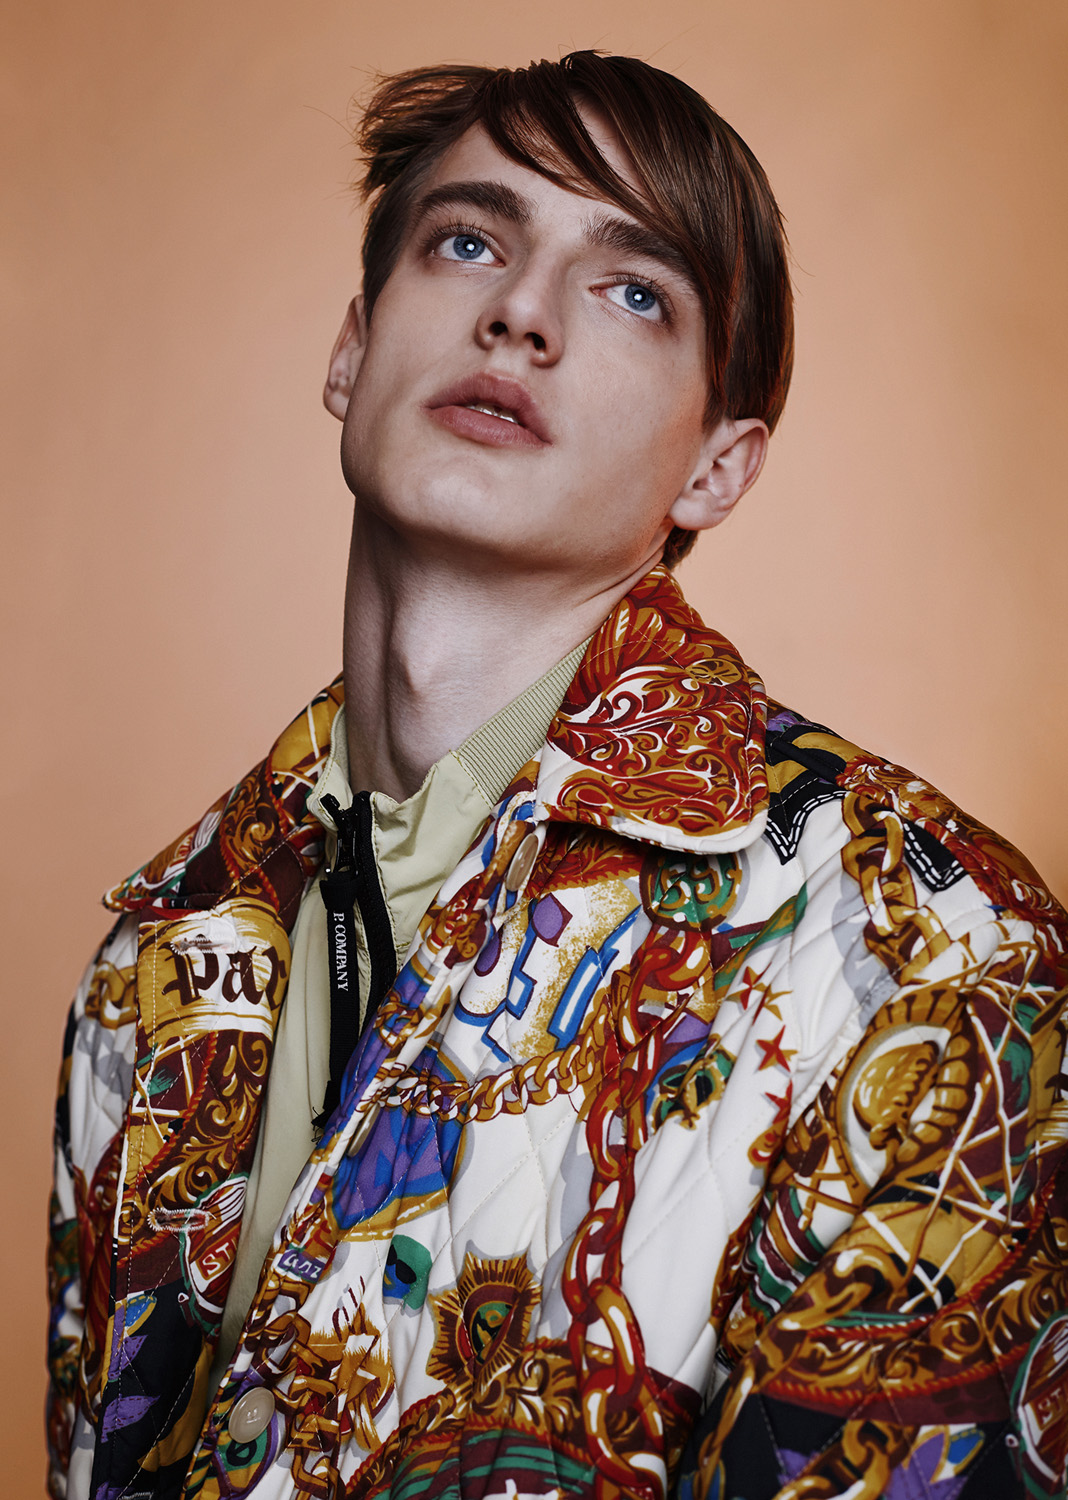 ABOVE IT ALL by Cryptic Child for CHASSEUR MAGAZINE (4)